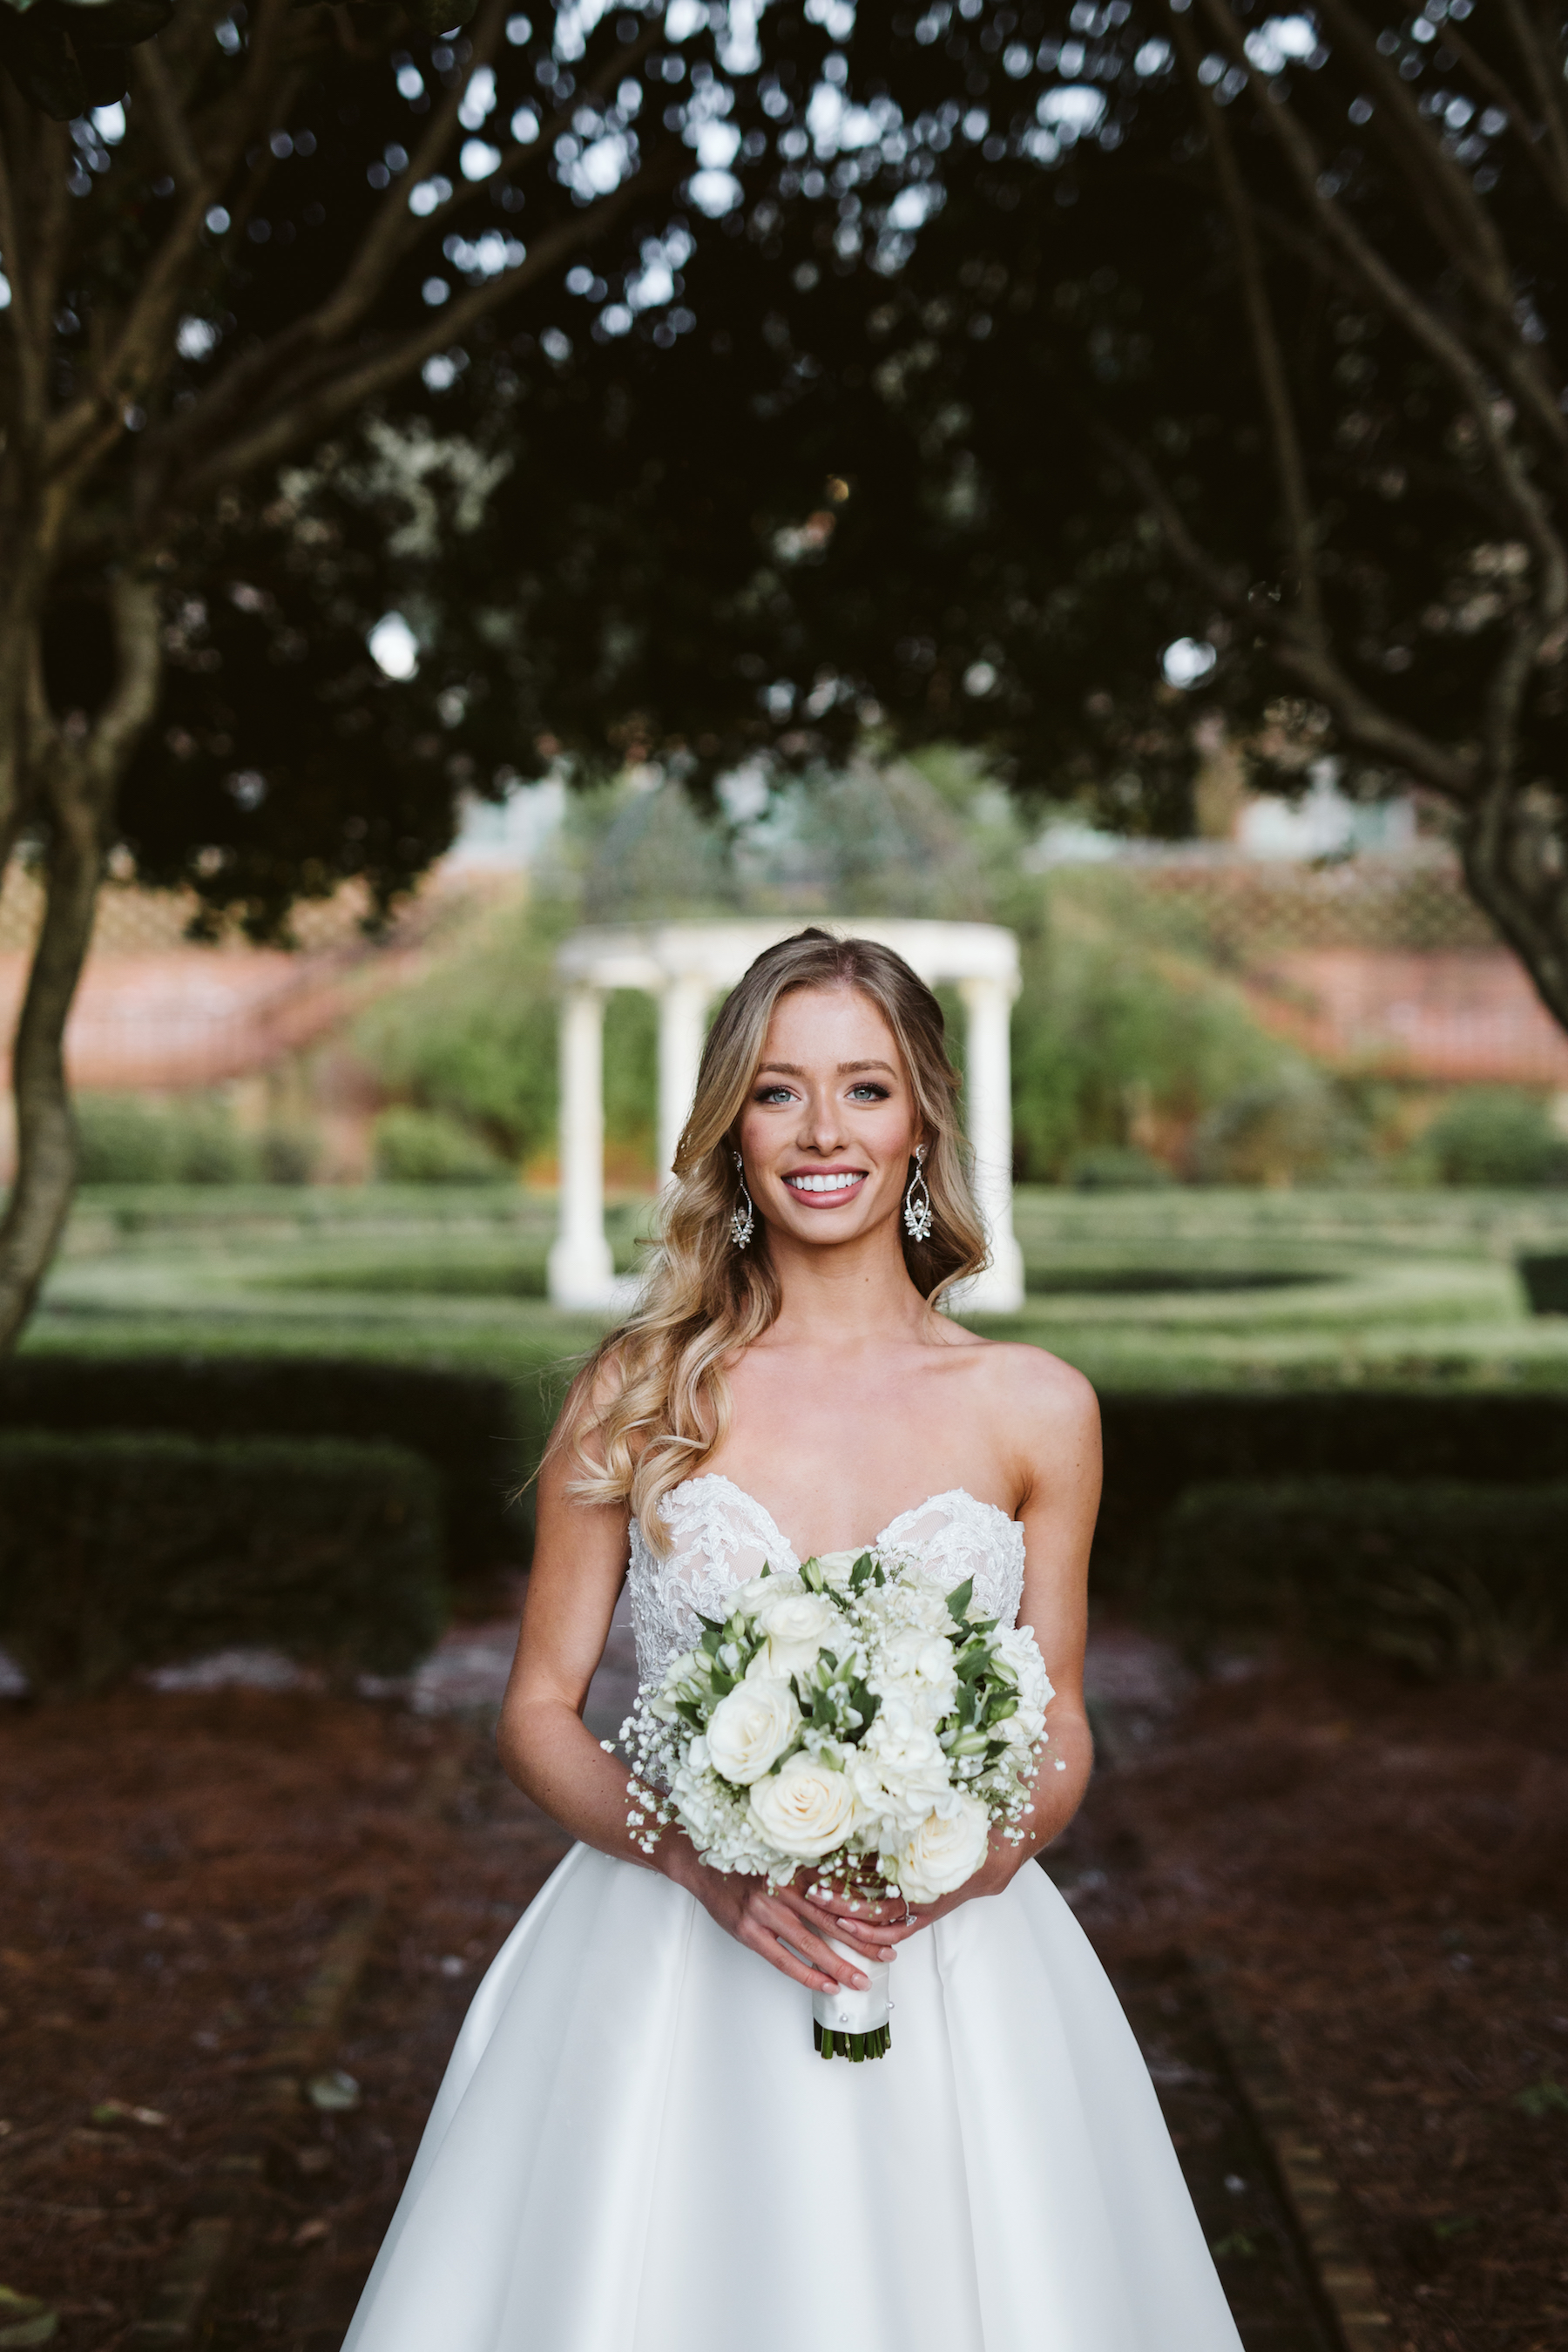 furman-university-bridals-paige-217.JPG